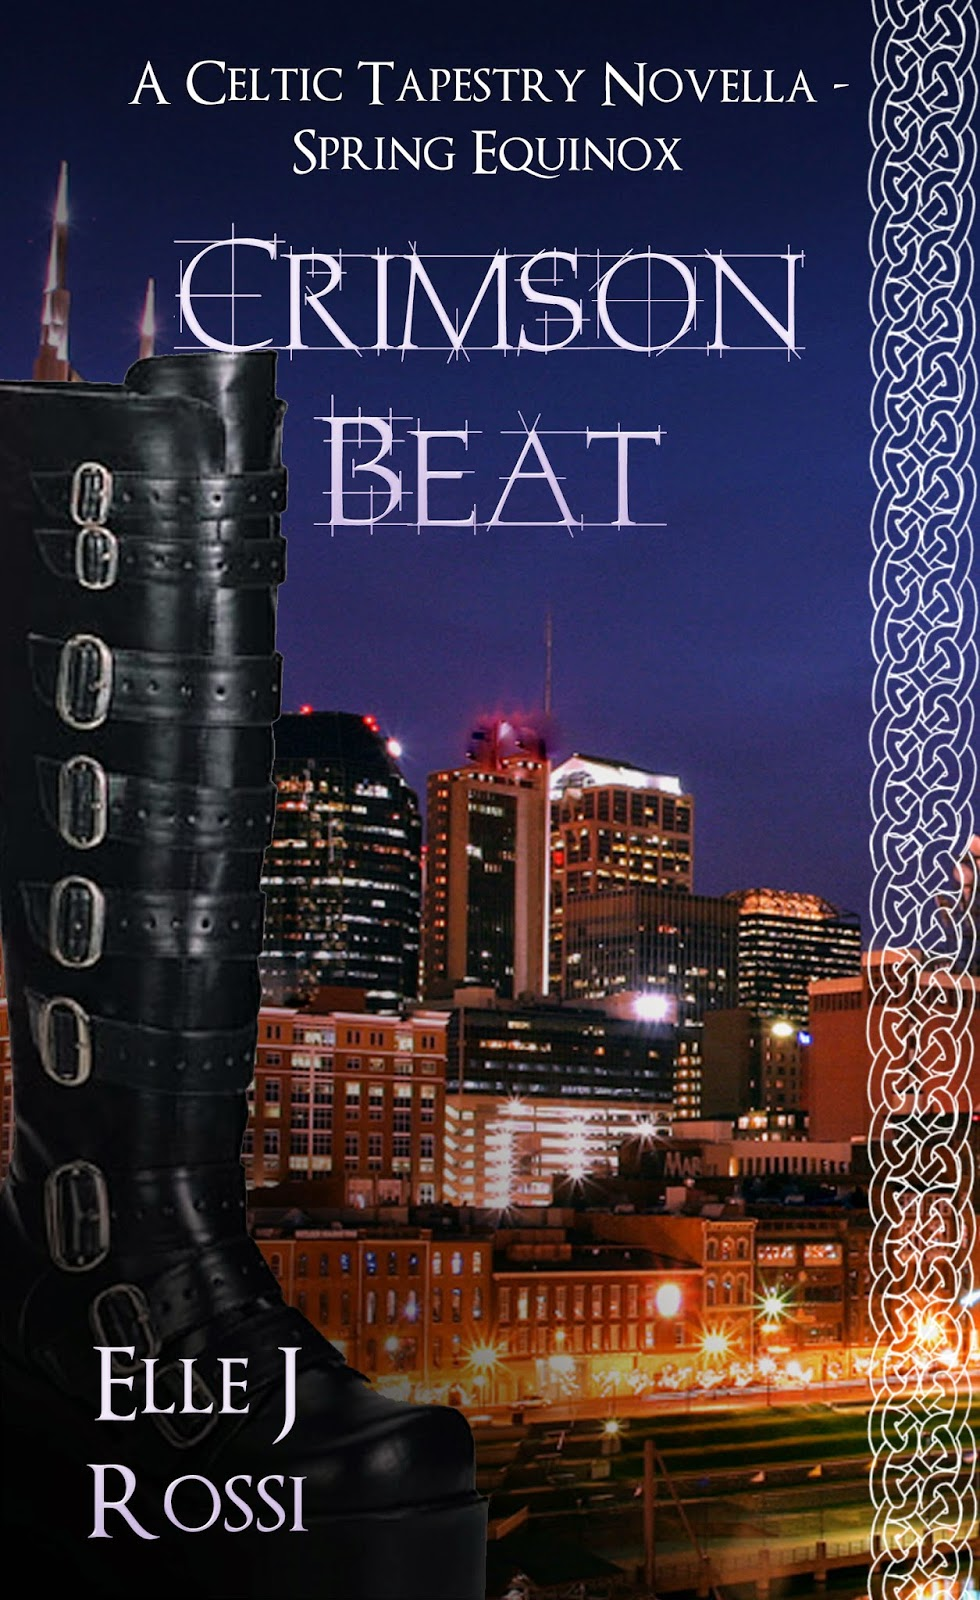 https://www.goodreads.com/book/show/21519080-crimson-beat